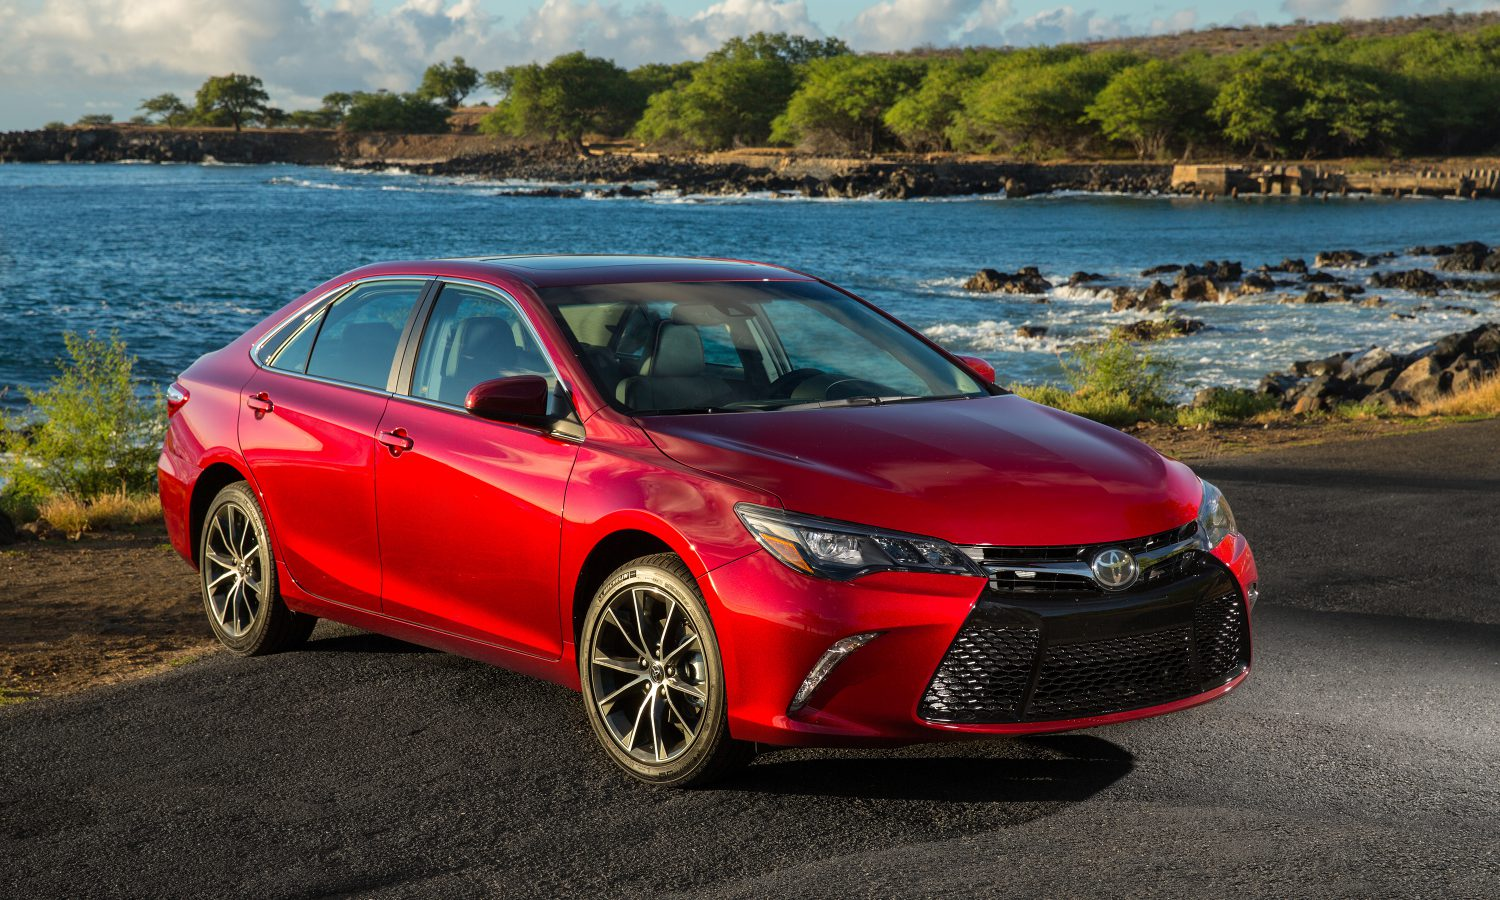 2017 Toyota Camry Reveals Secret for Remaining America's Top-Selling